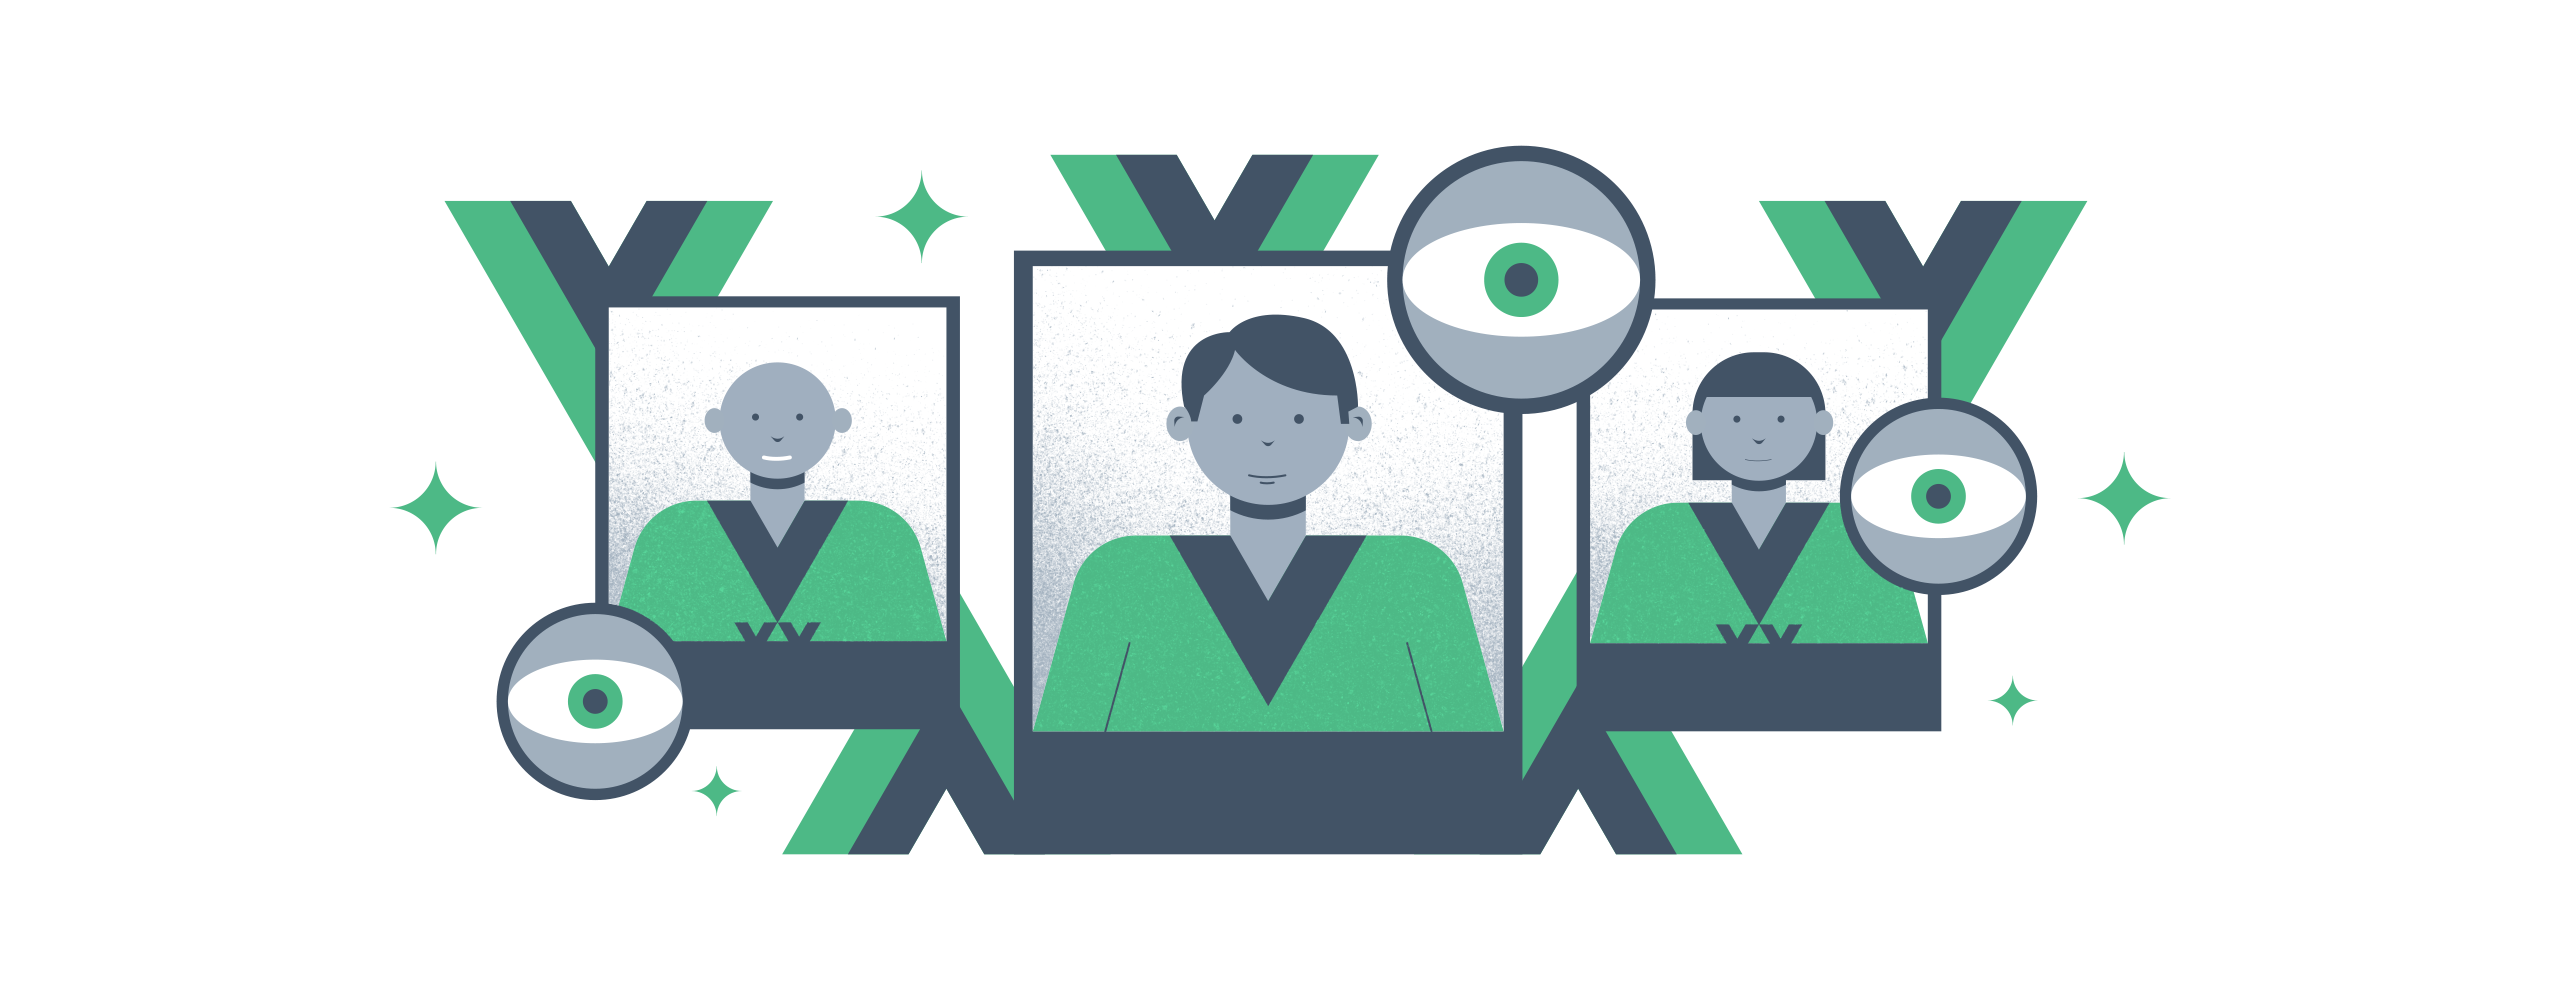 People to watch if you're vue.js dev-1